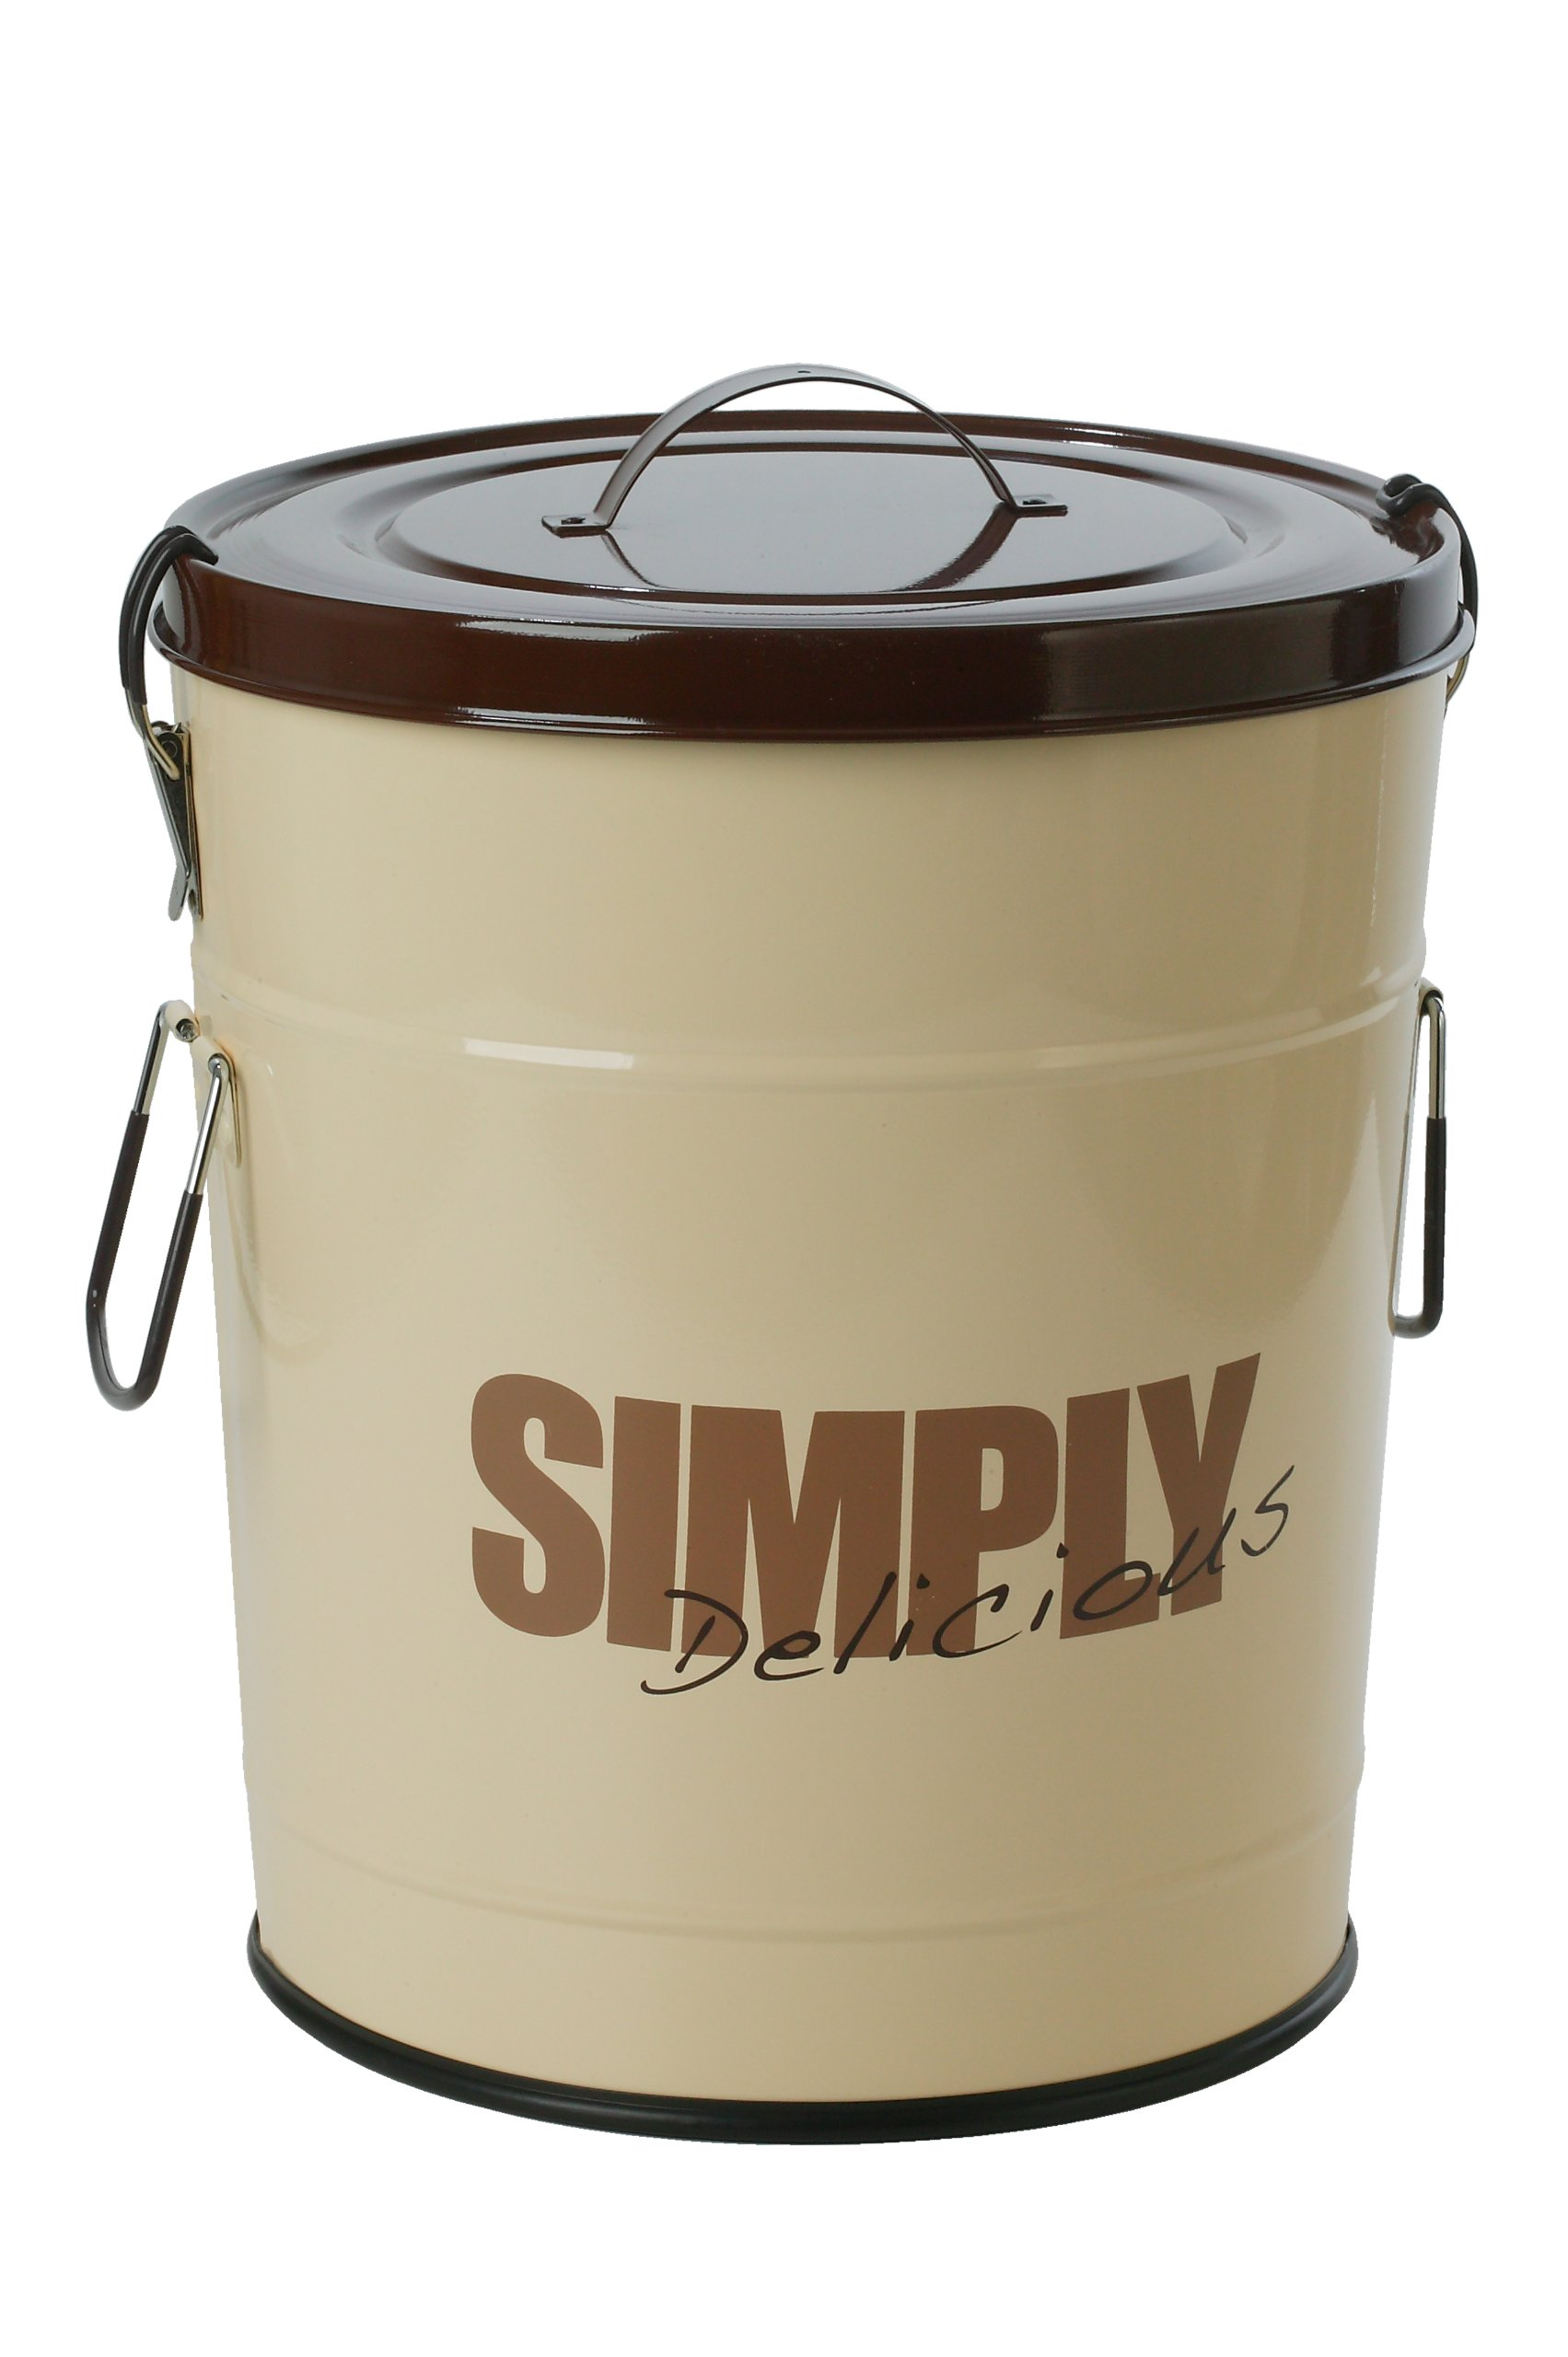 One for Pets Simply Delicious Dog Food Container, 17.6-Pound, Brown